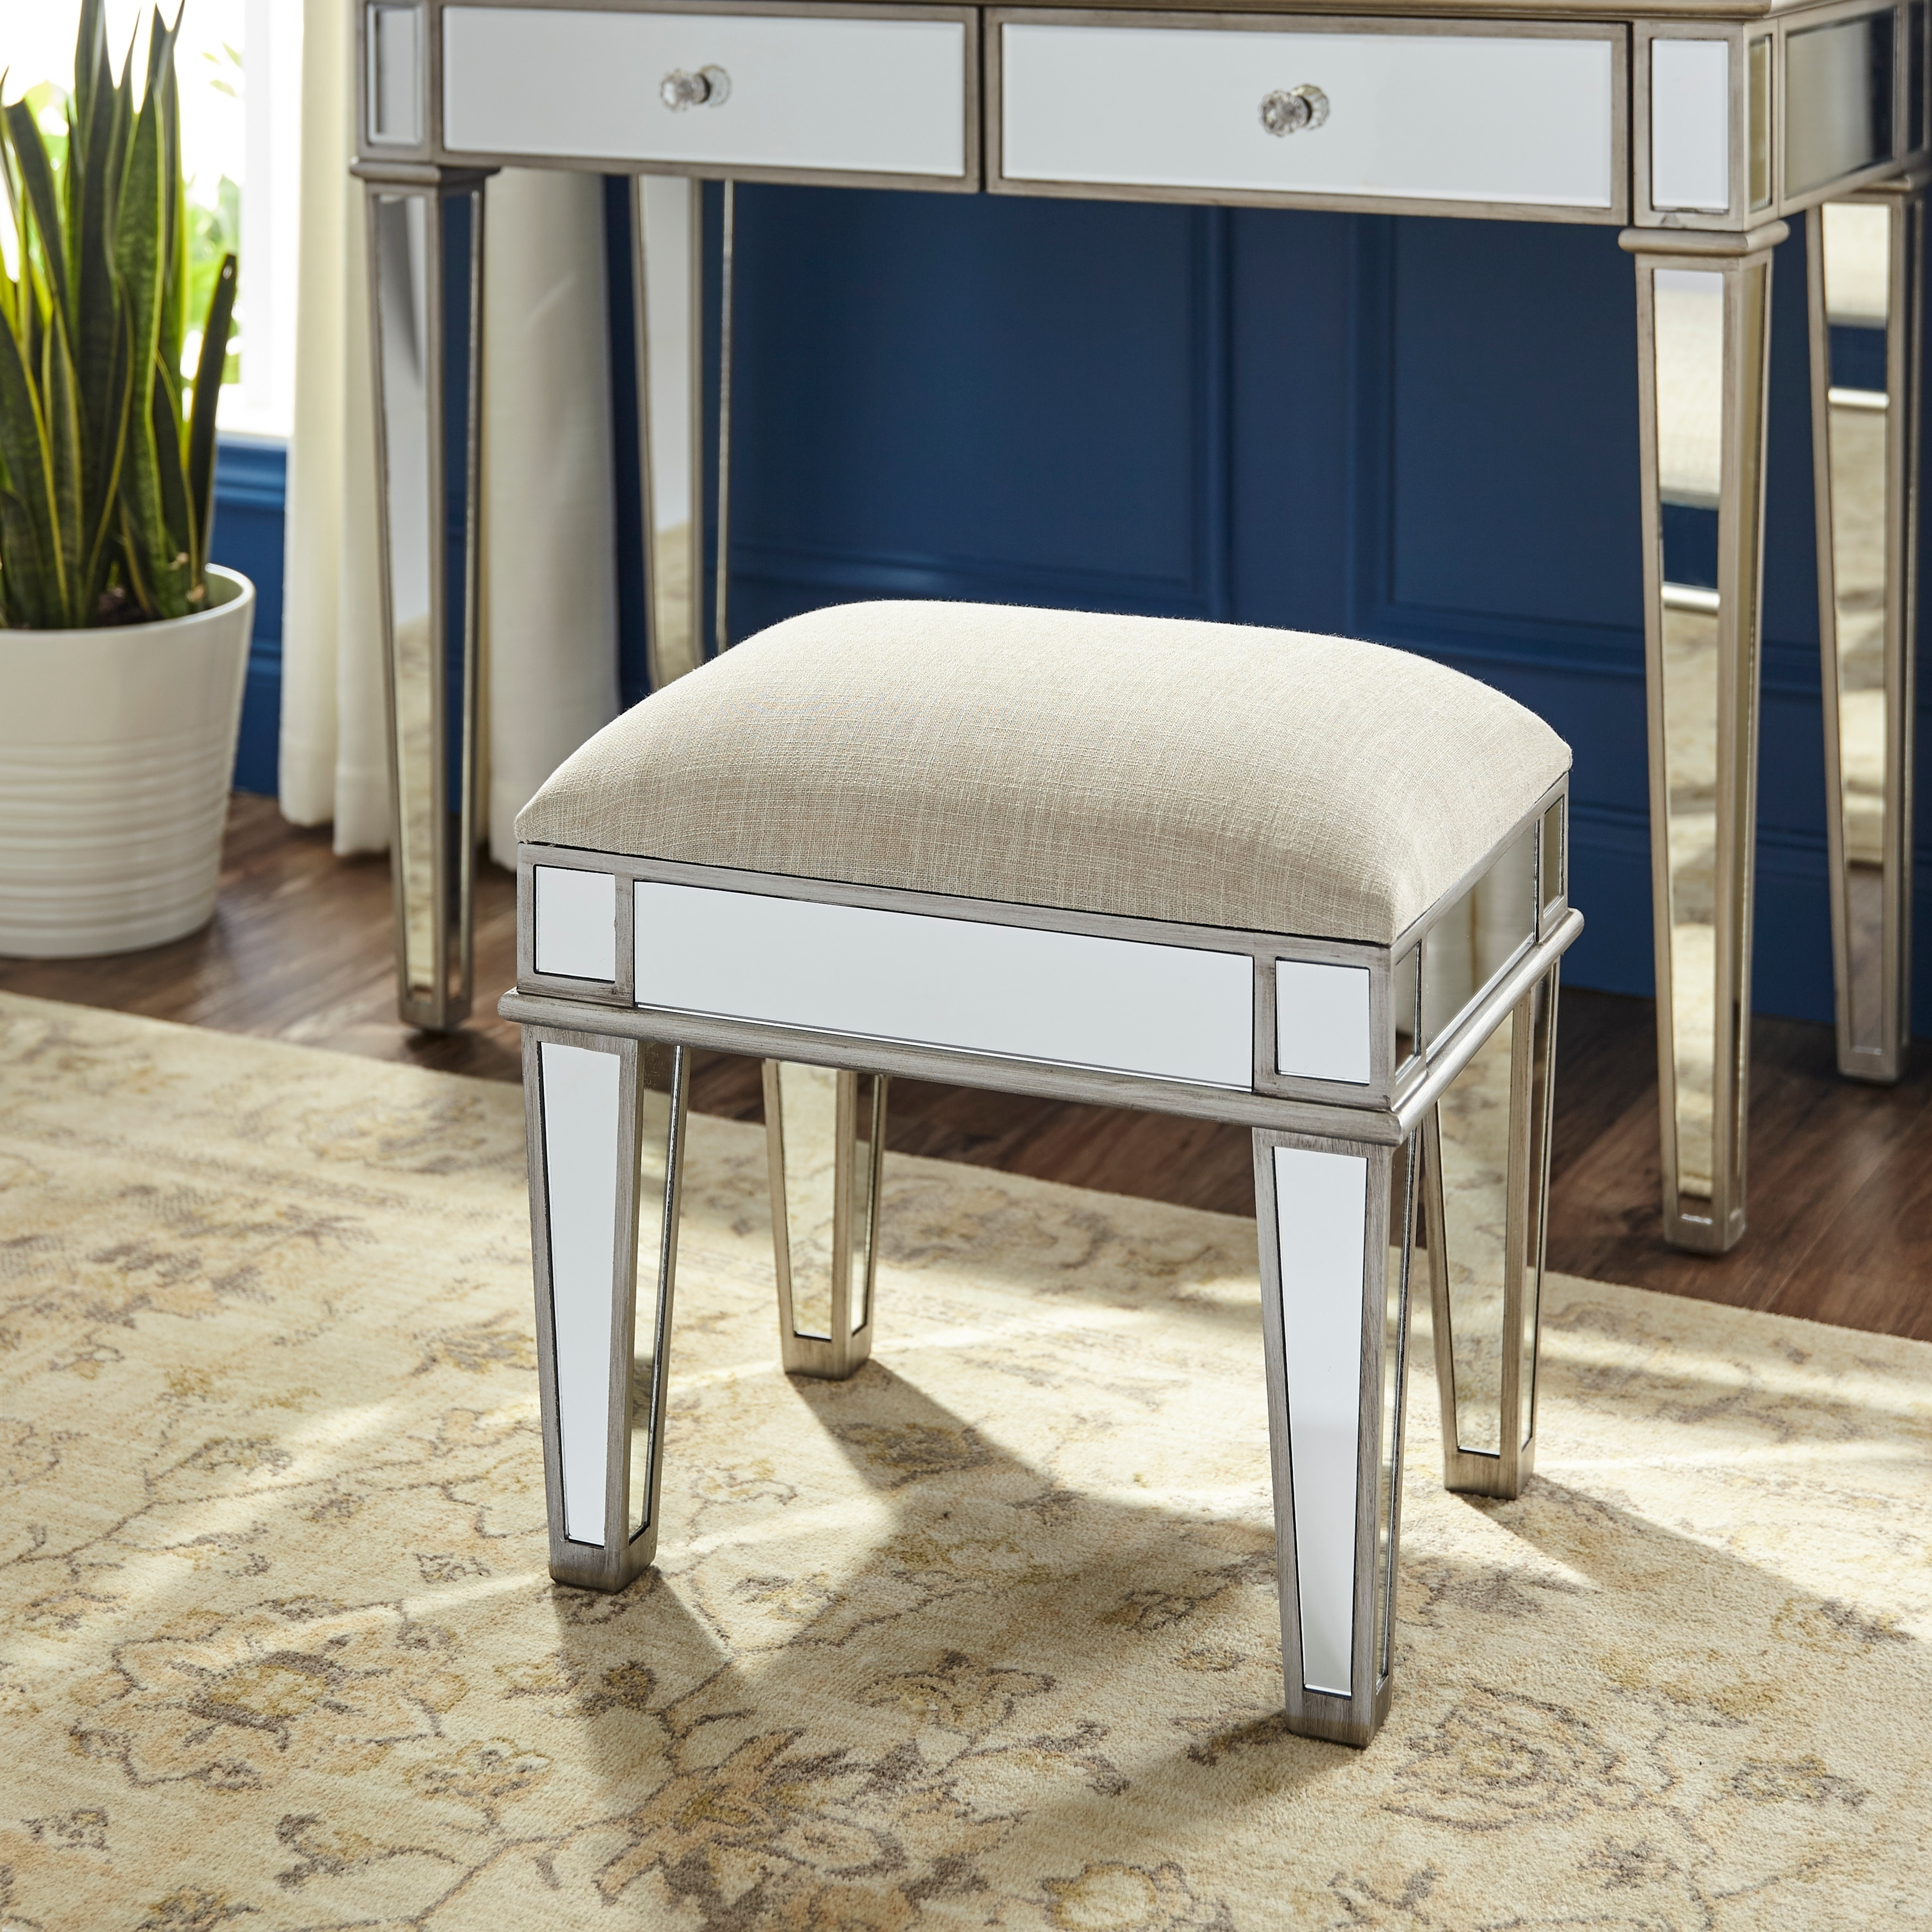 Remarkable Silver Orchid Kanis Glam Silver Mirror Vanity Stool Short Links Chair Design For Home Short Linksinfo